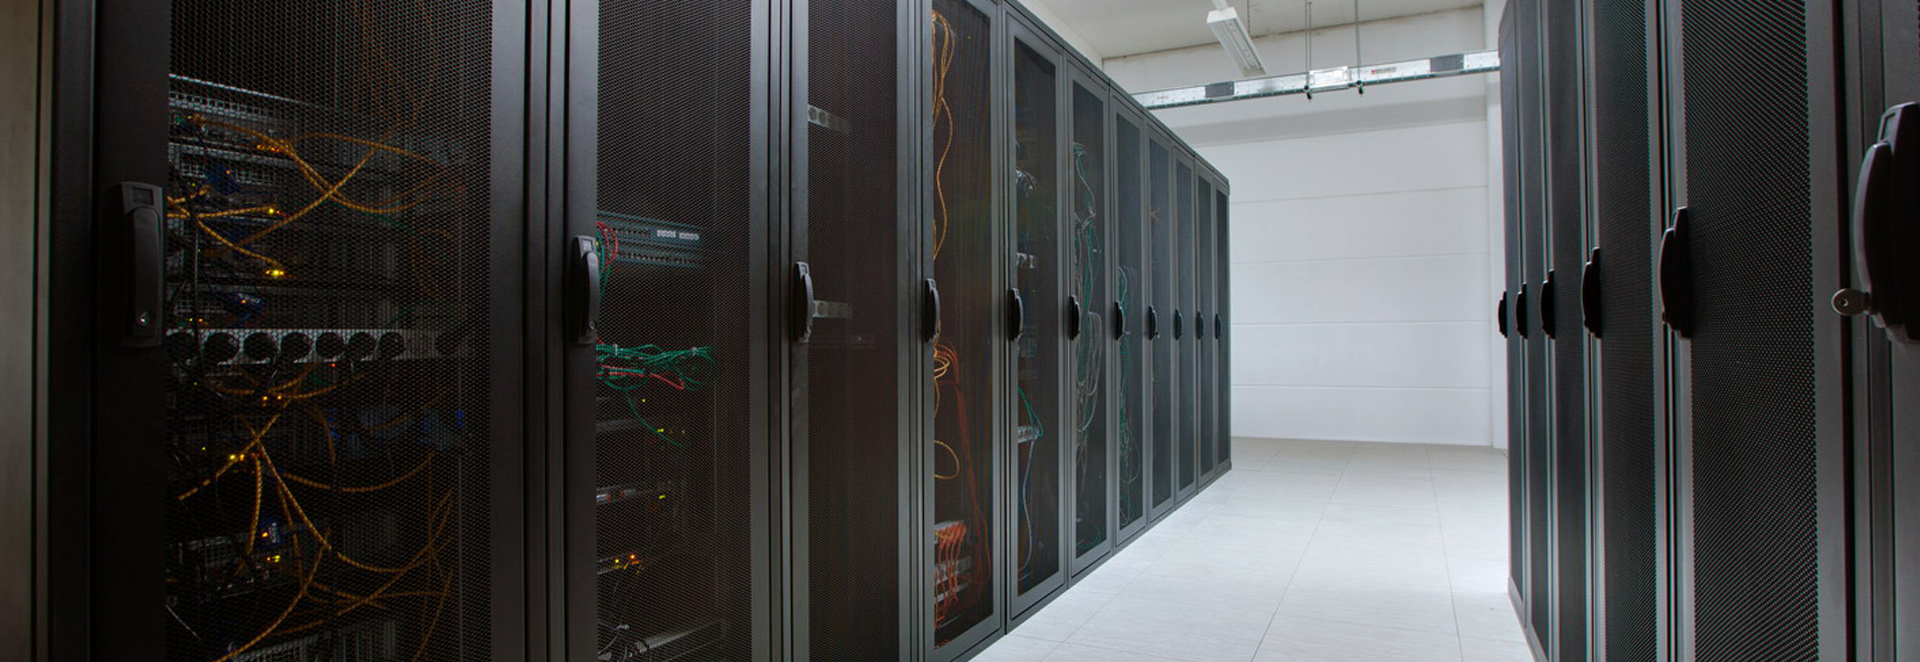 Datacenter FlameNetworks 6